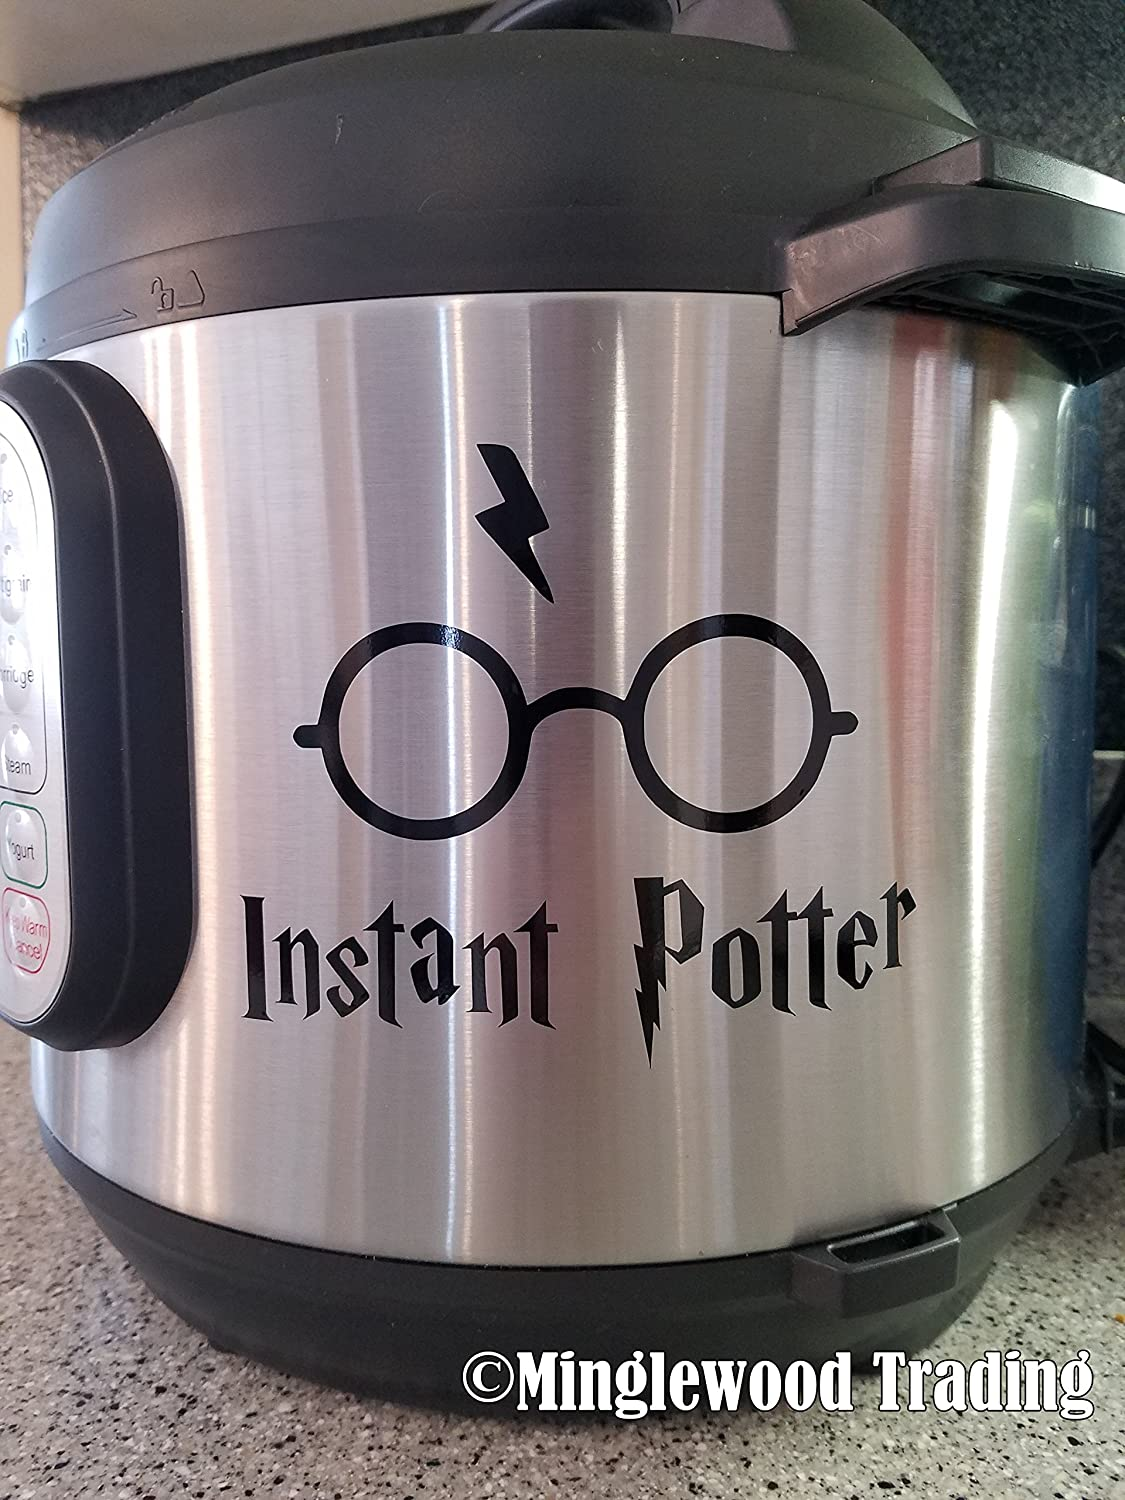 "Instant Potter 5"" x 4"" Vinyl Decal Sticker for Instant Pot InstaPot Harry - 20 Color Options - Black"